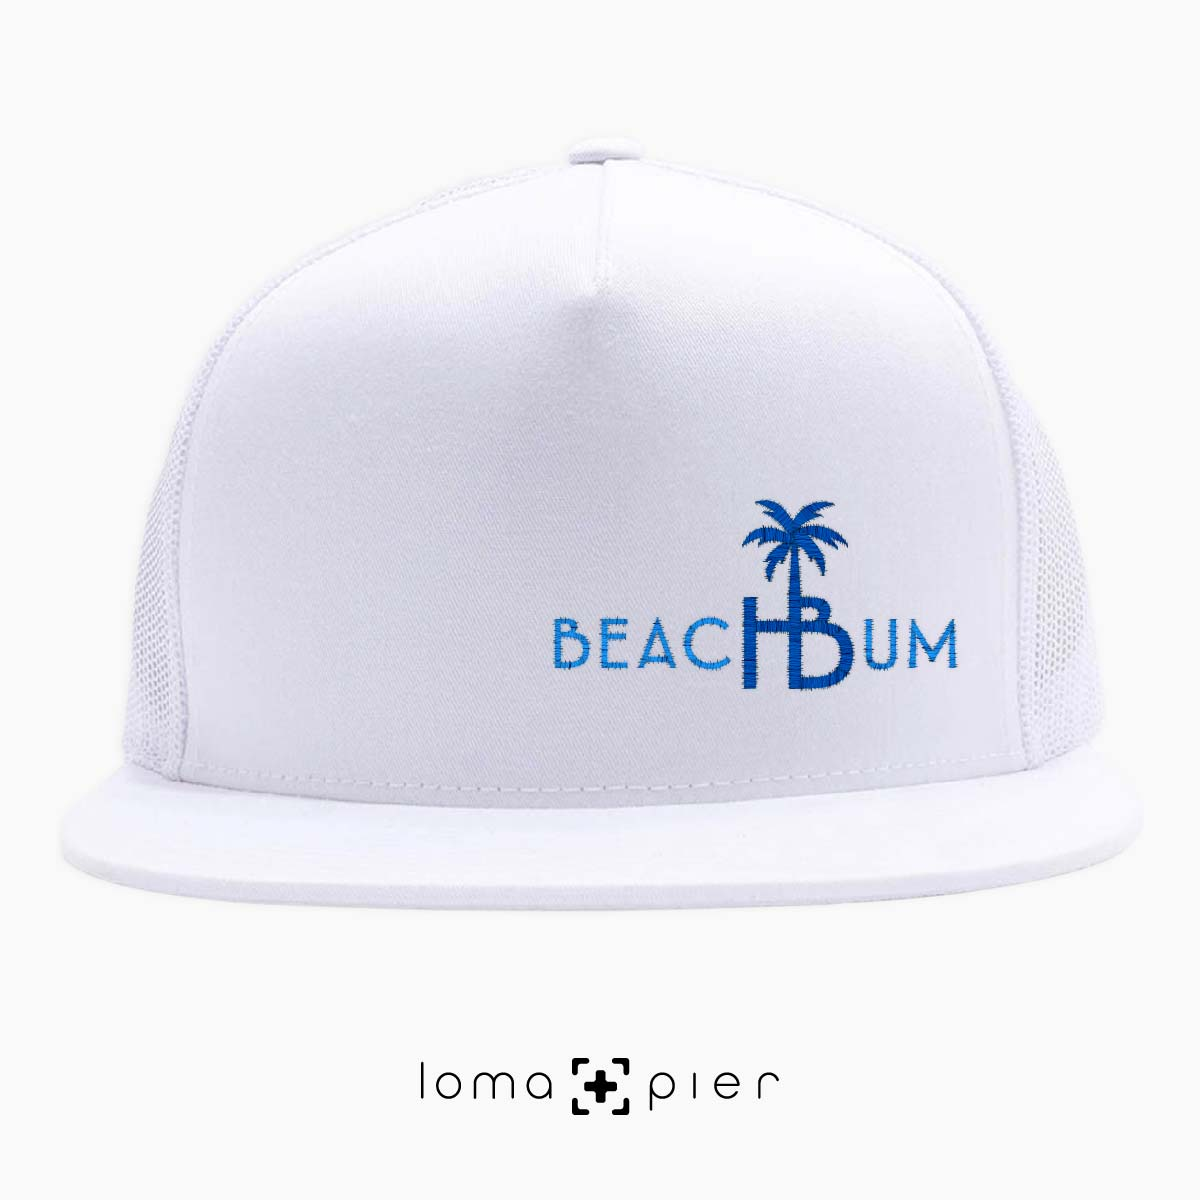 hermosa beach bum netback hat by loma and pier hat shop